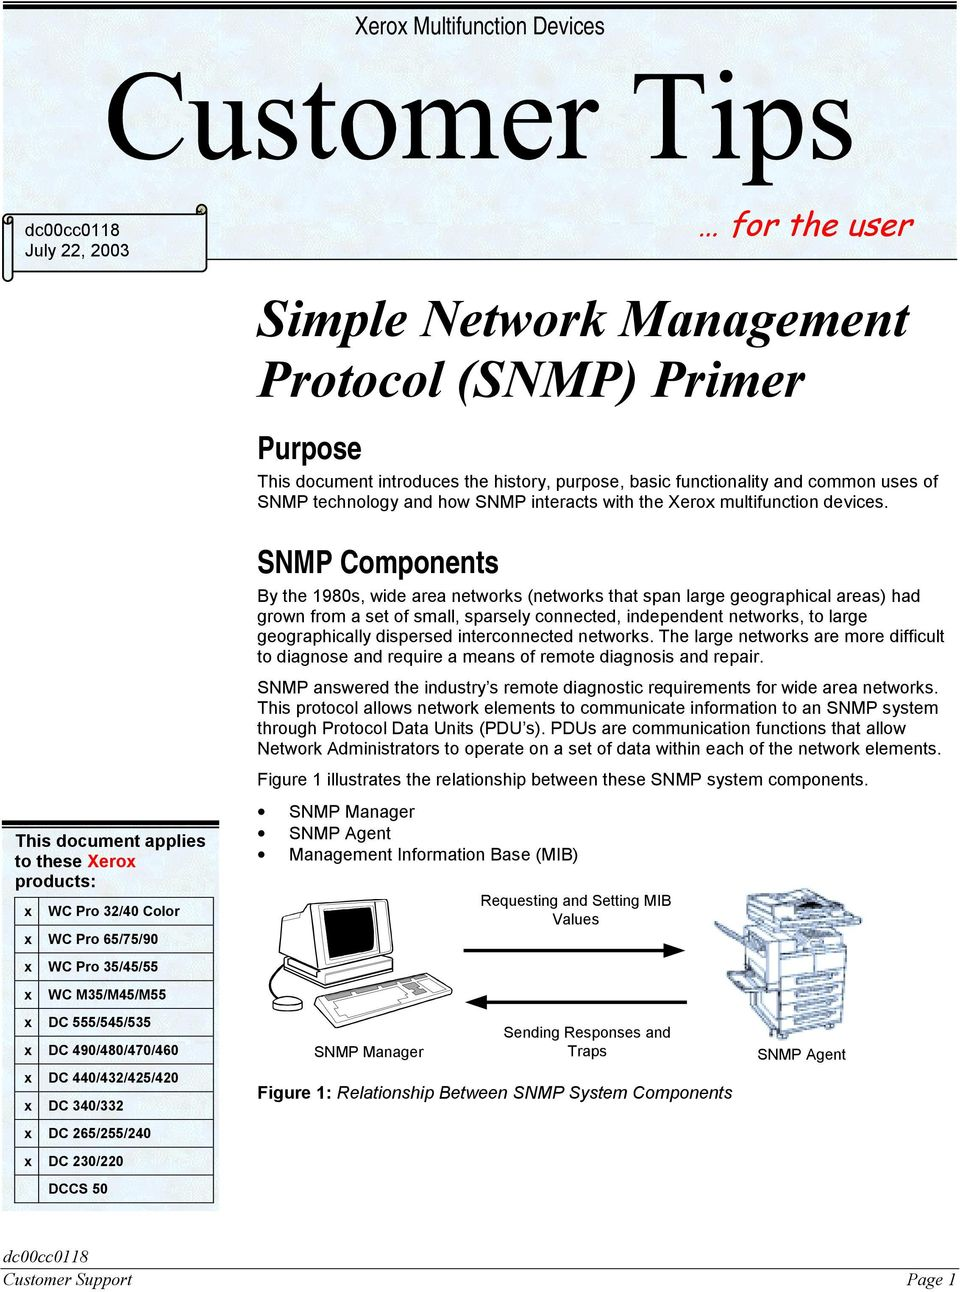 SNMP Components By the 1980s, wide area networks (networks that span large geographical areas) had grown from a set of small, sparsely connected, independent networks, to large geographically